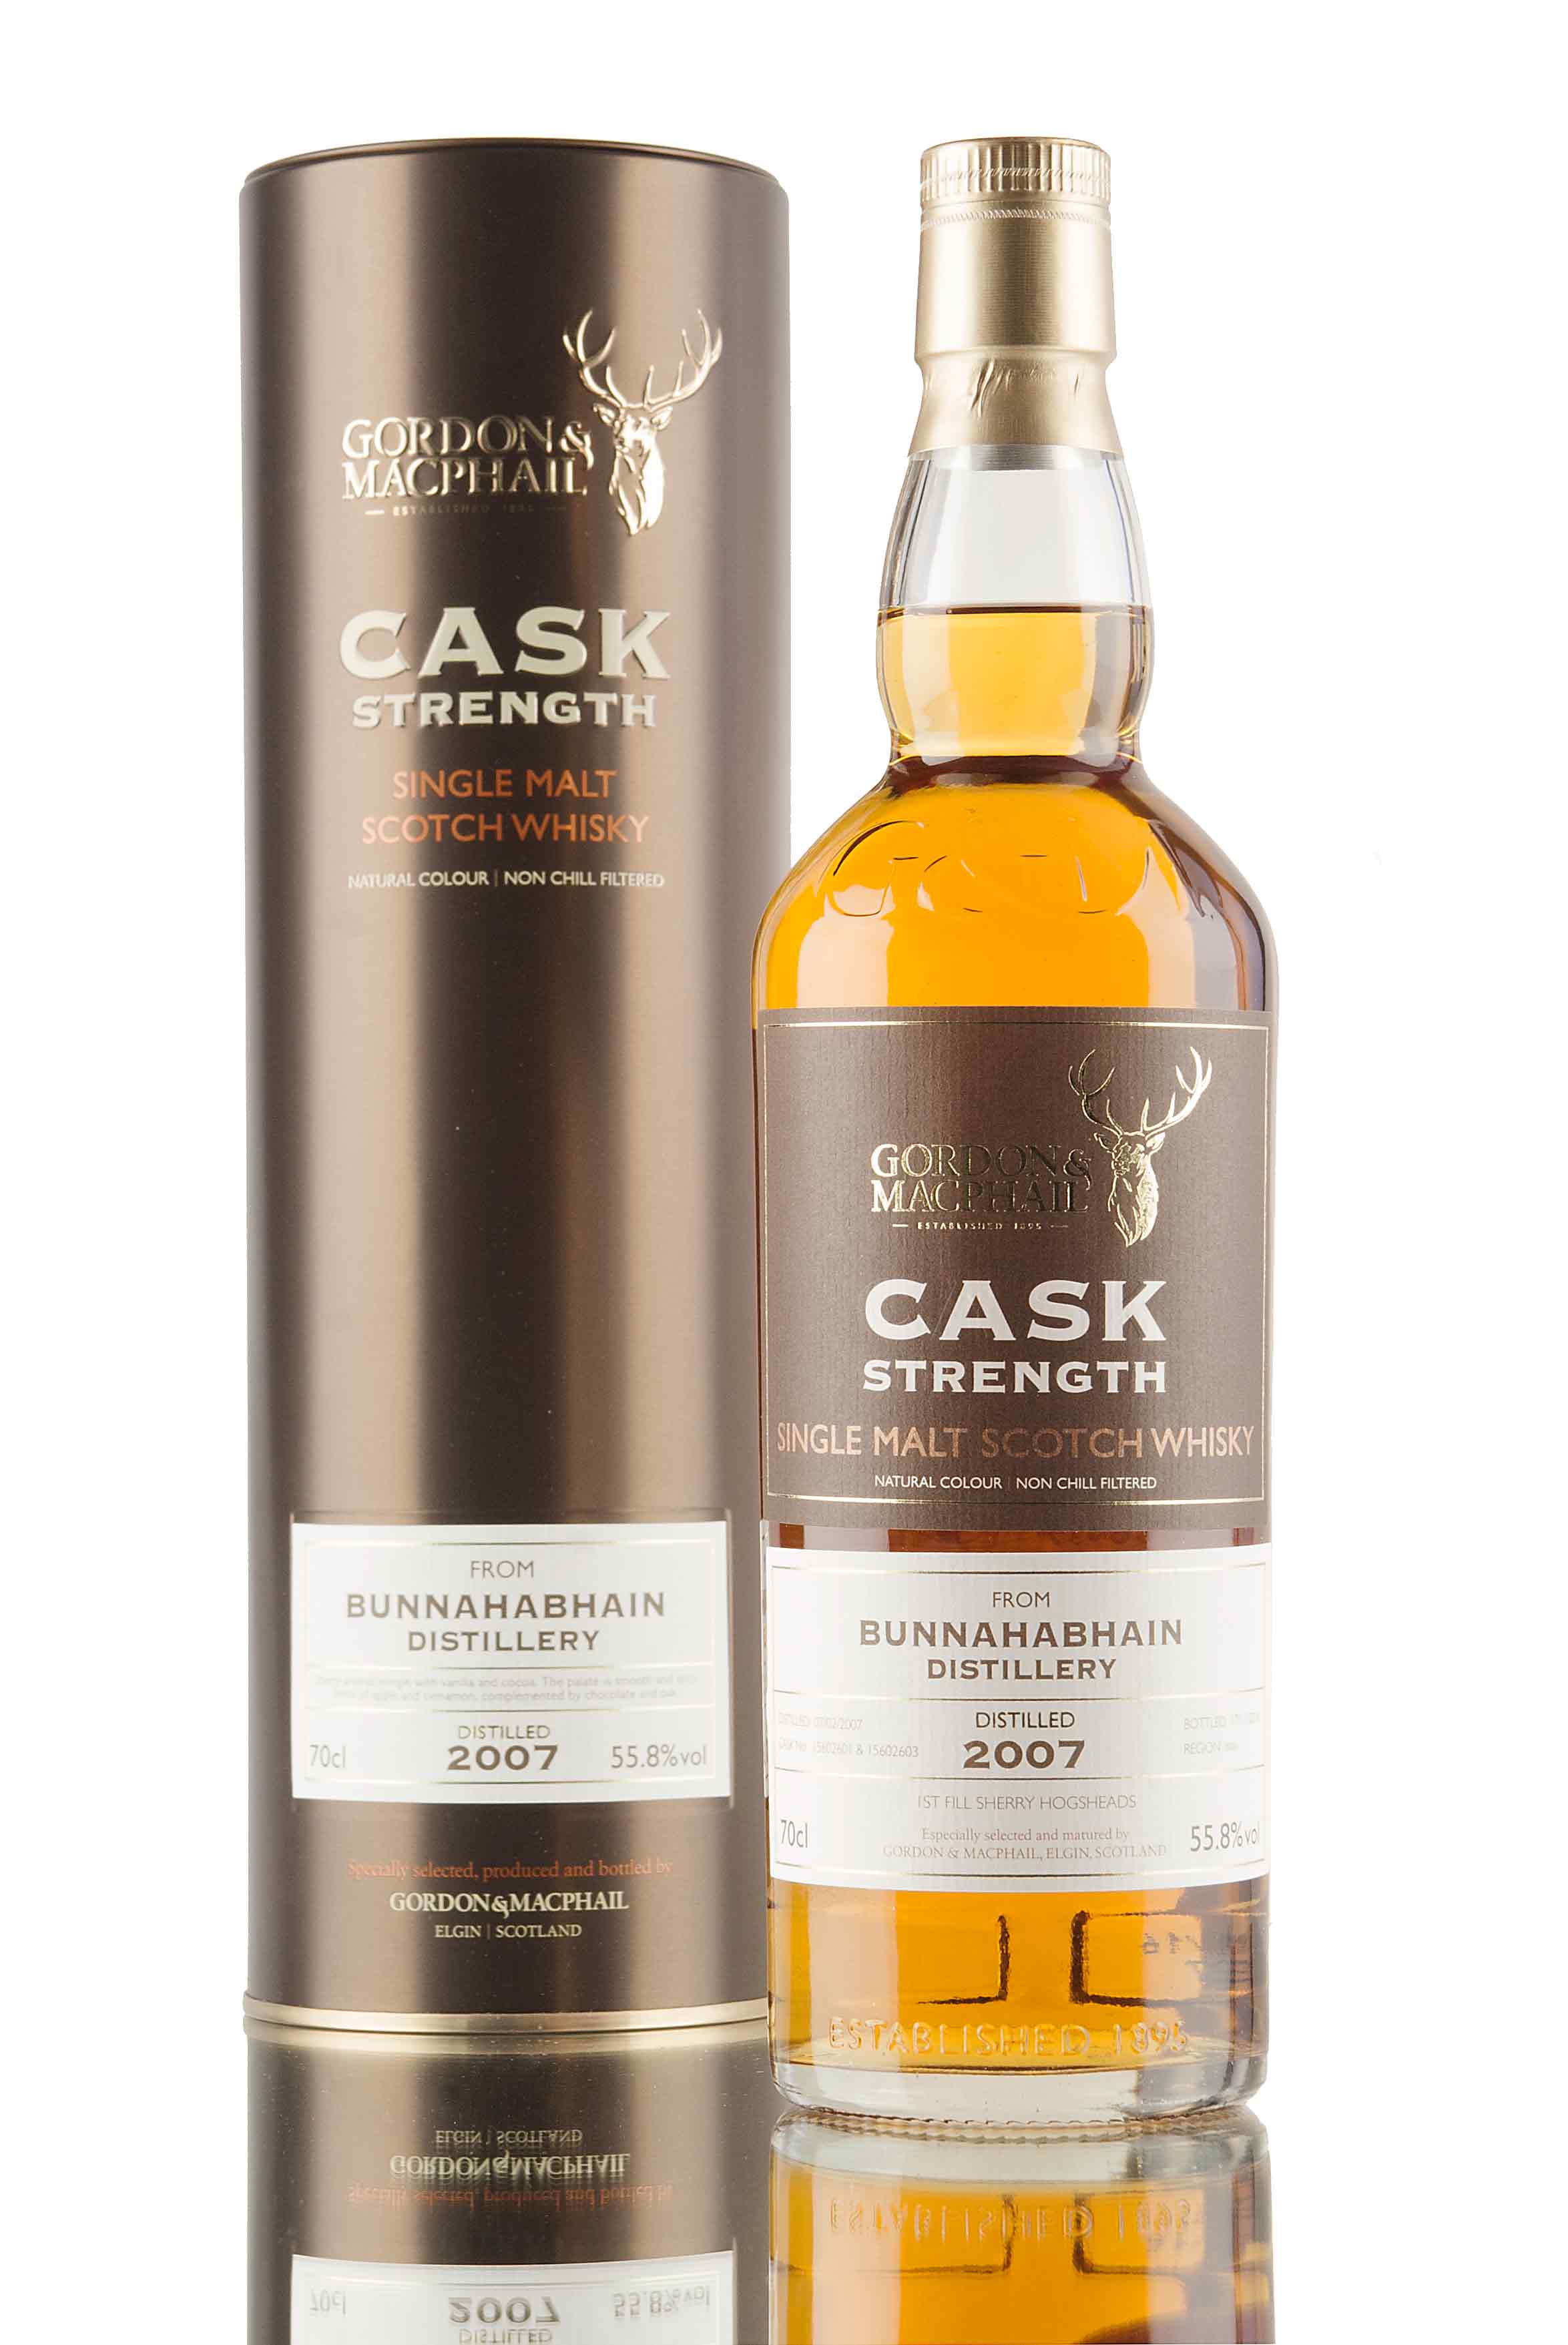 Bunnahabhain 9 Year Old - 2007 | Cask Strength (G&M)